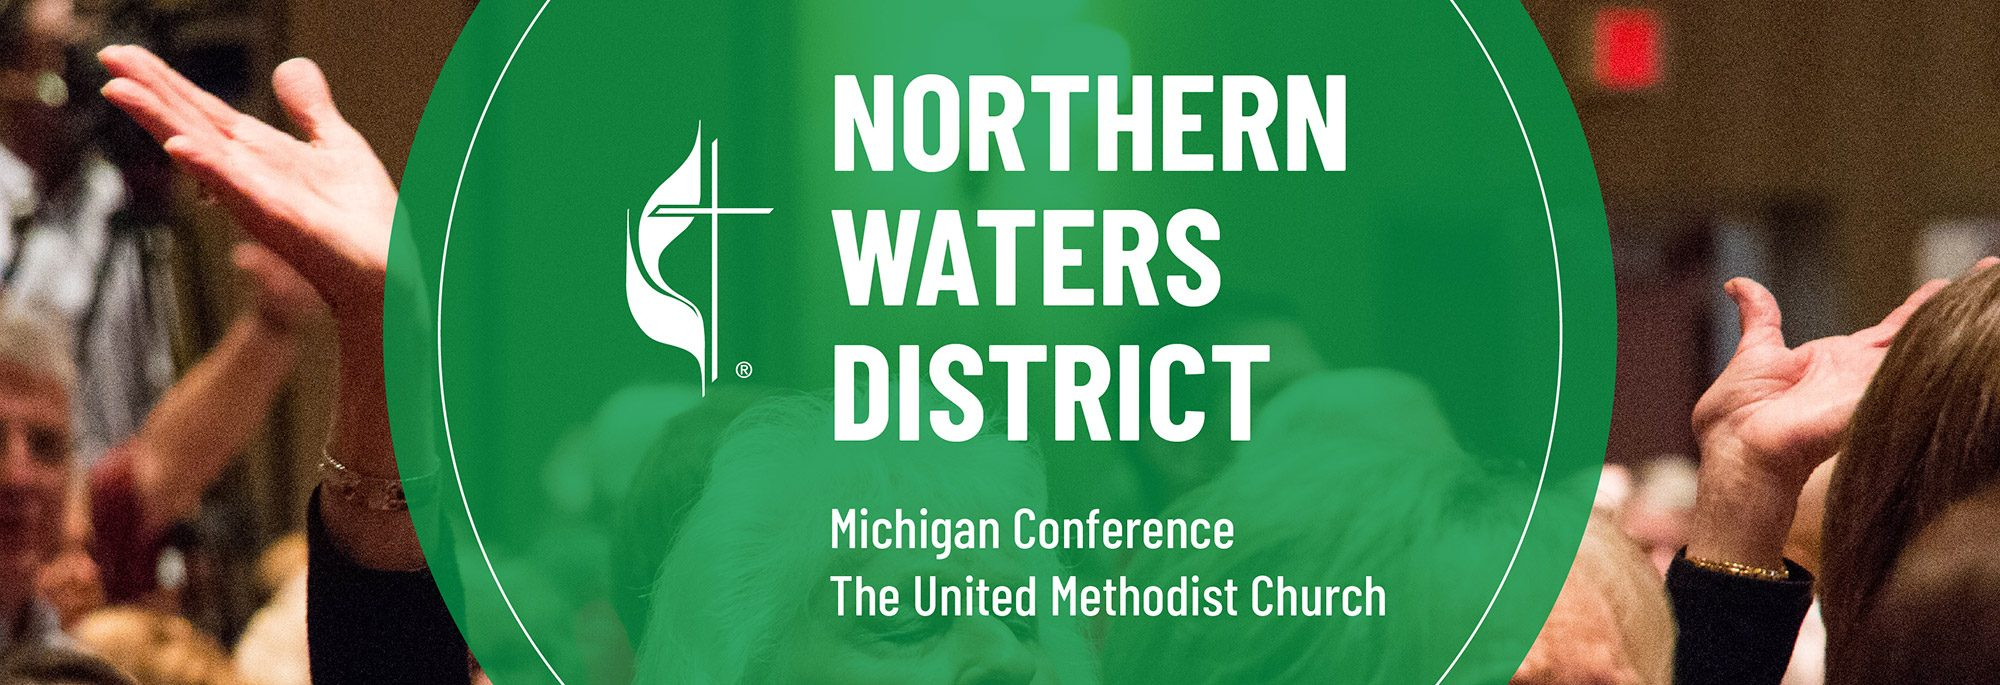 Northern Waters District Header